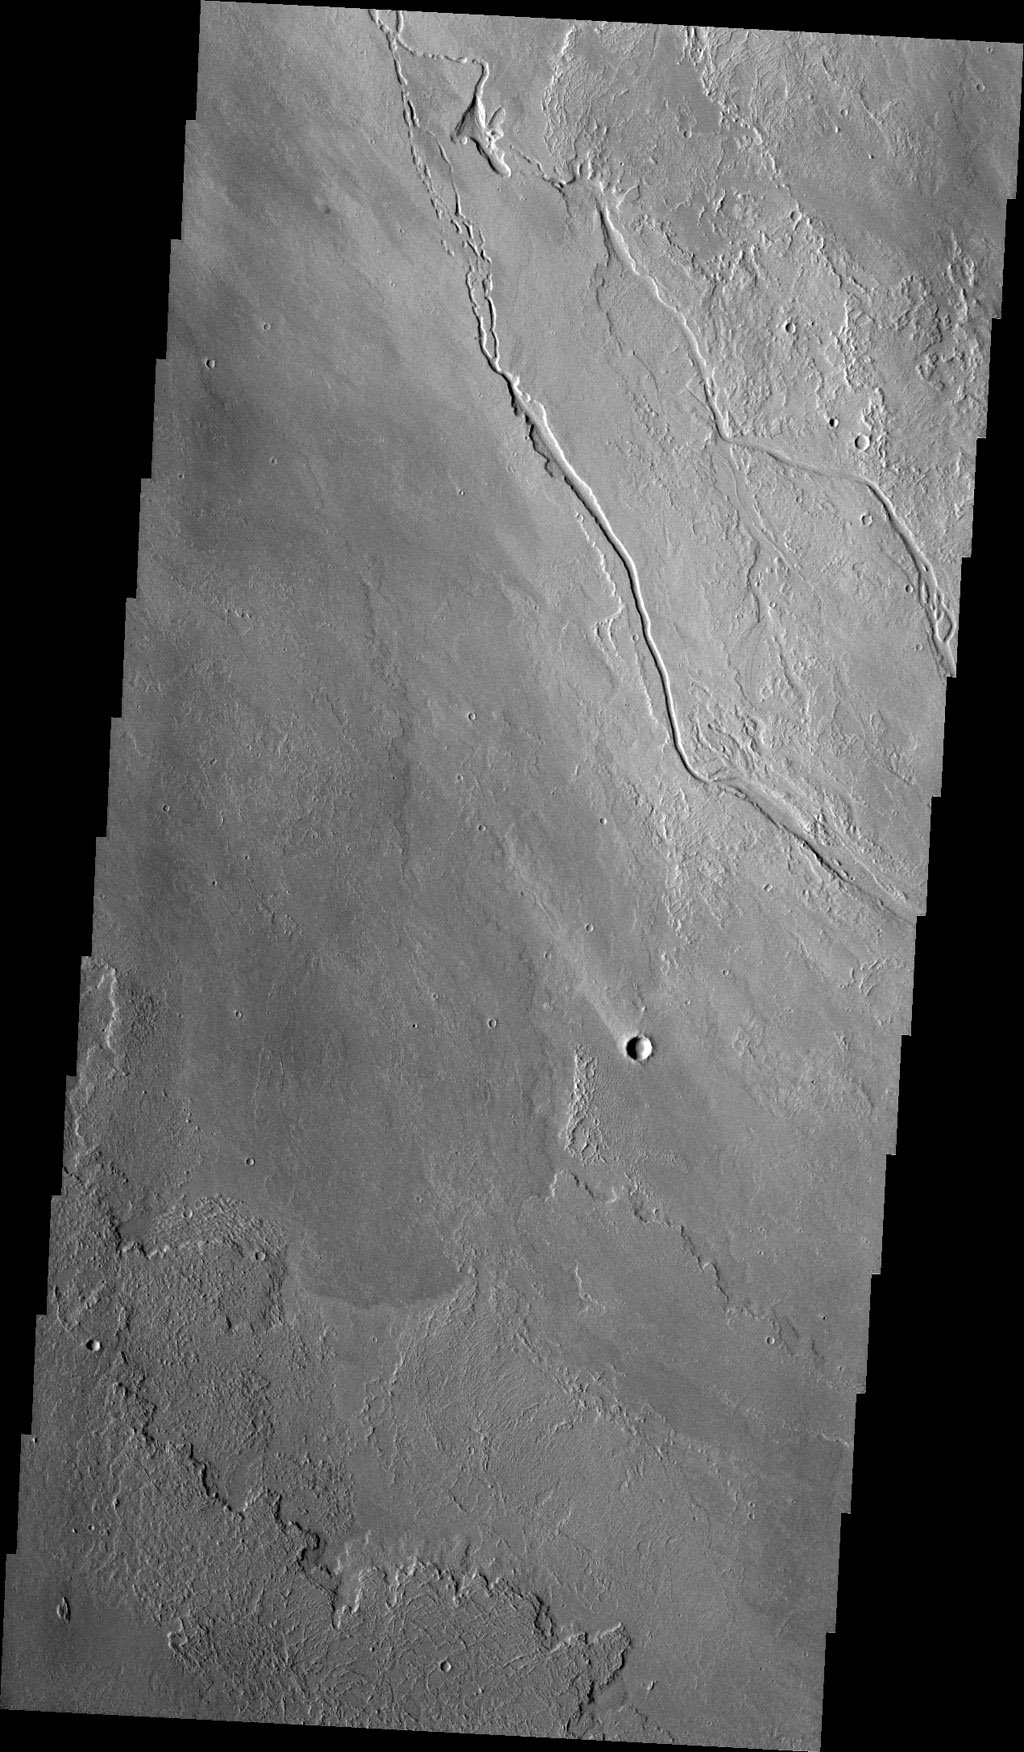 The channels in this image from NASA's 2001 Mars Odyssey spacecraft were created by the flow of lava rather than water. These lava channels are near the northeast flank of Olympus Mons.